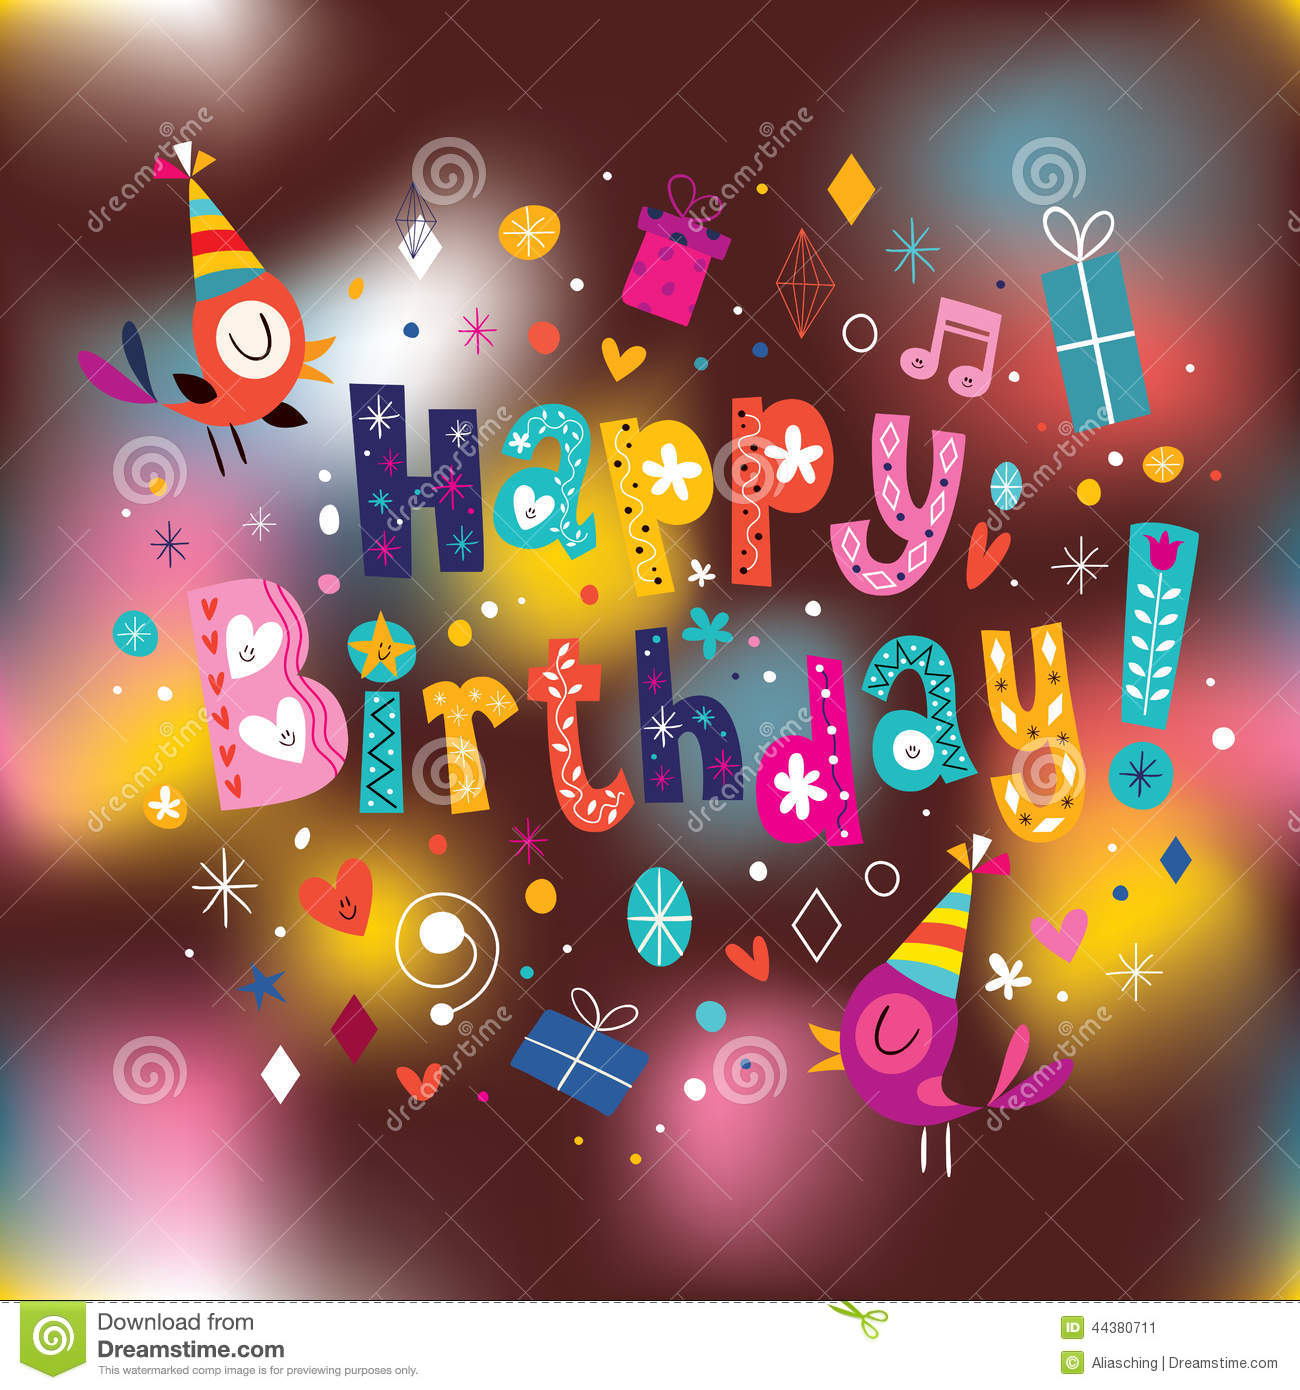 Happy Birthday Card Images gangcraftnet – Beautiful Happy Birthday Cards